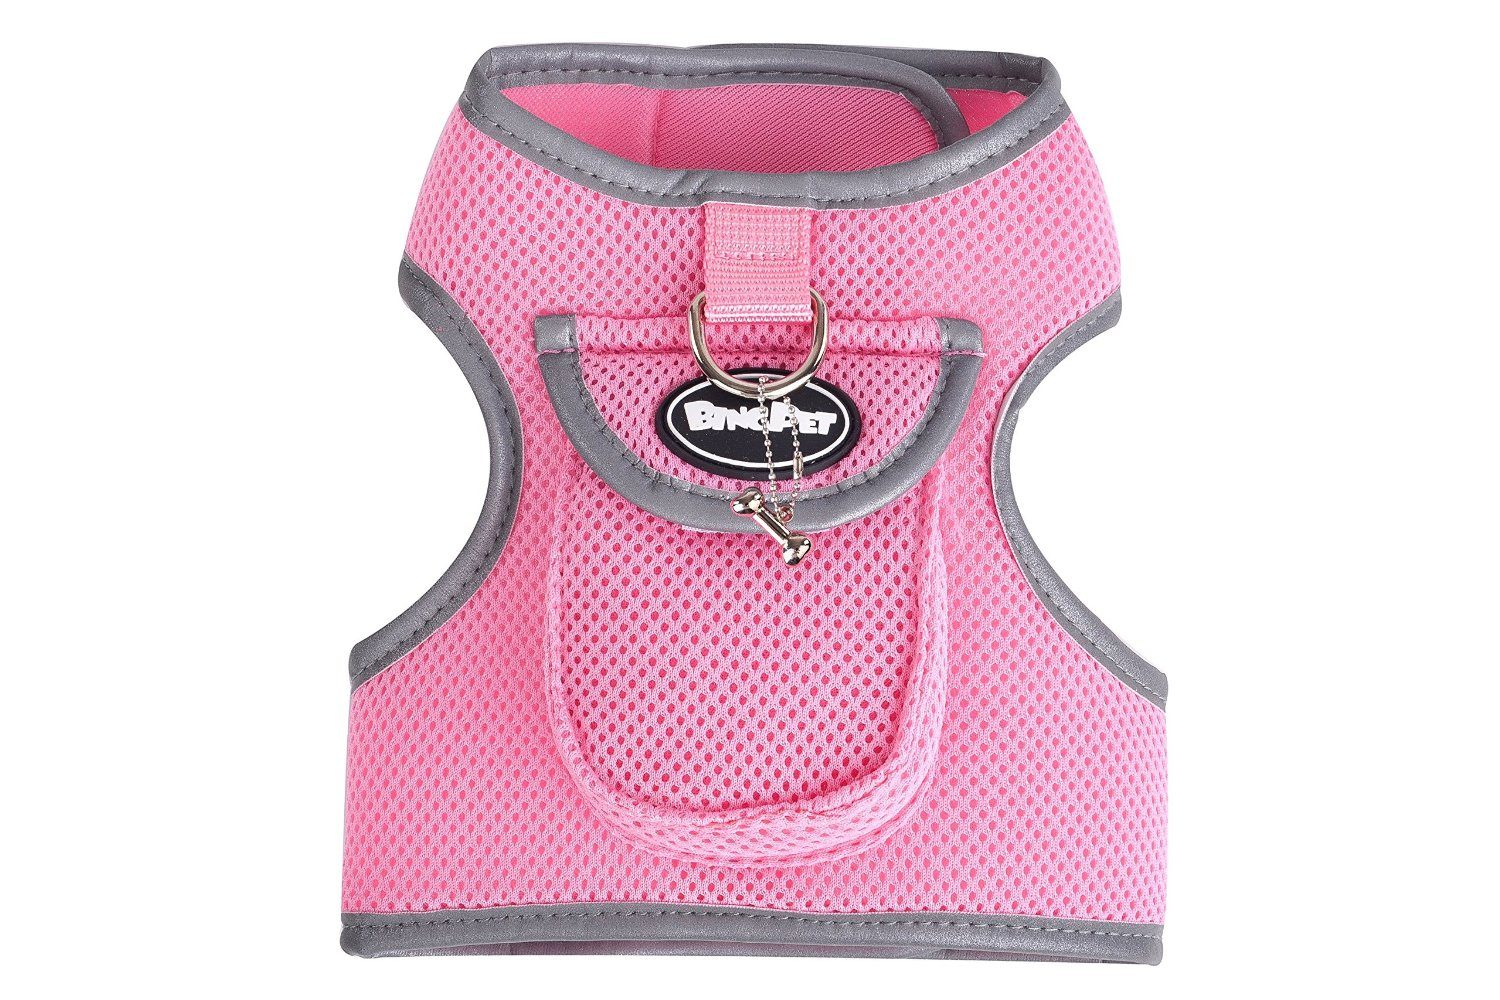 BINGPET Soft Mesh Dog Backpack Harness Pet Puppy Padded Vest